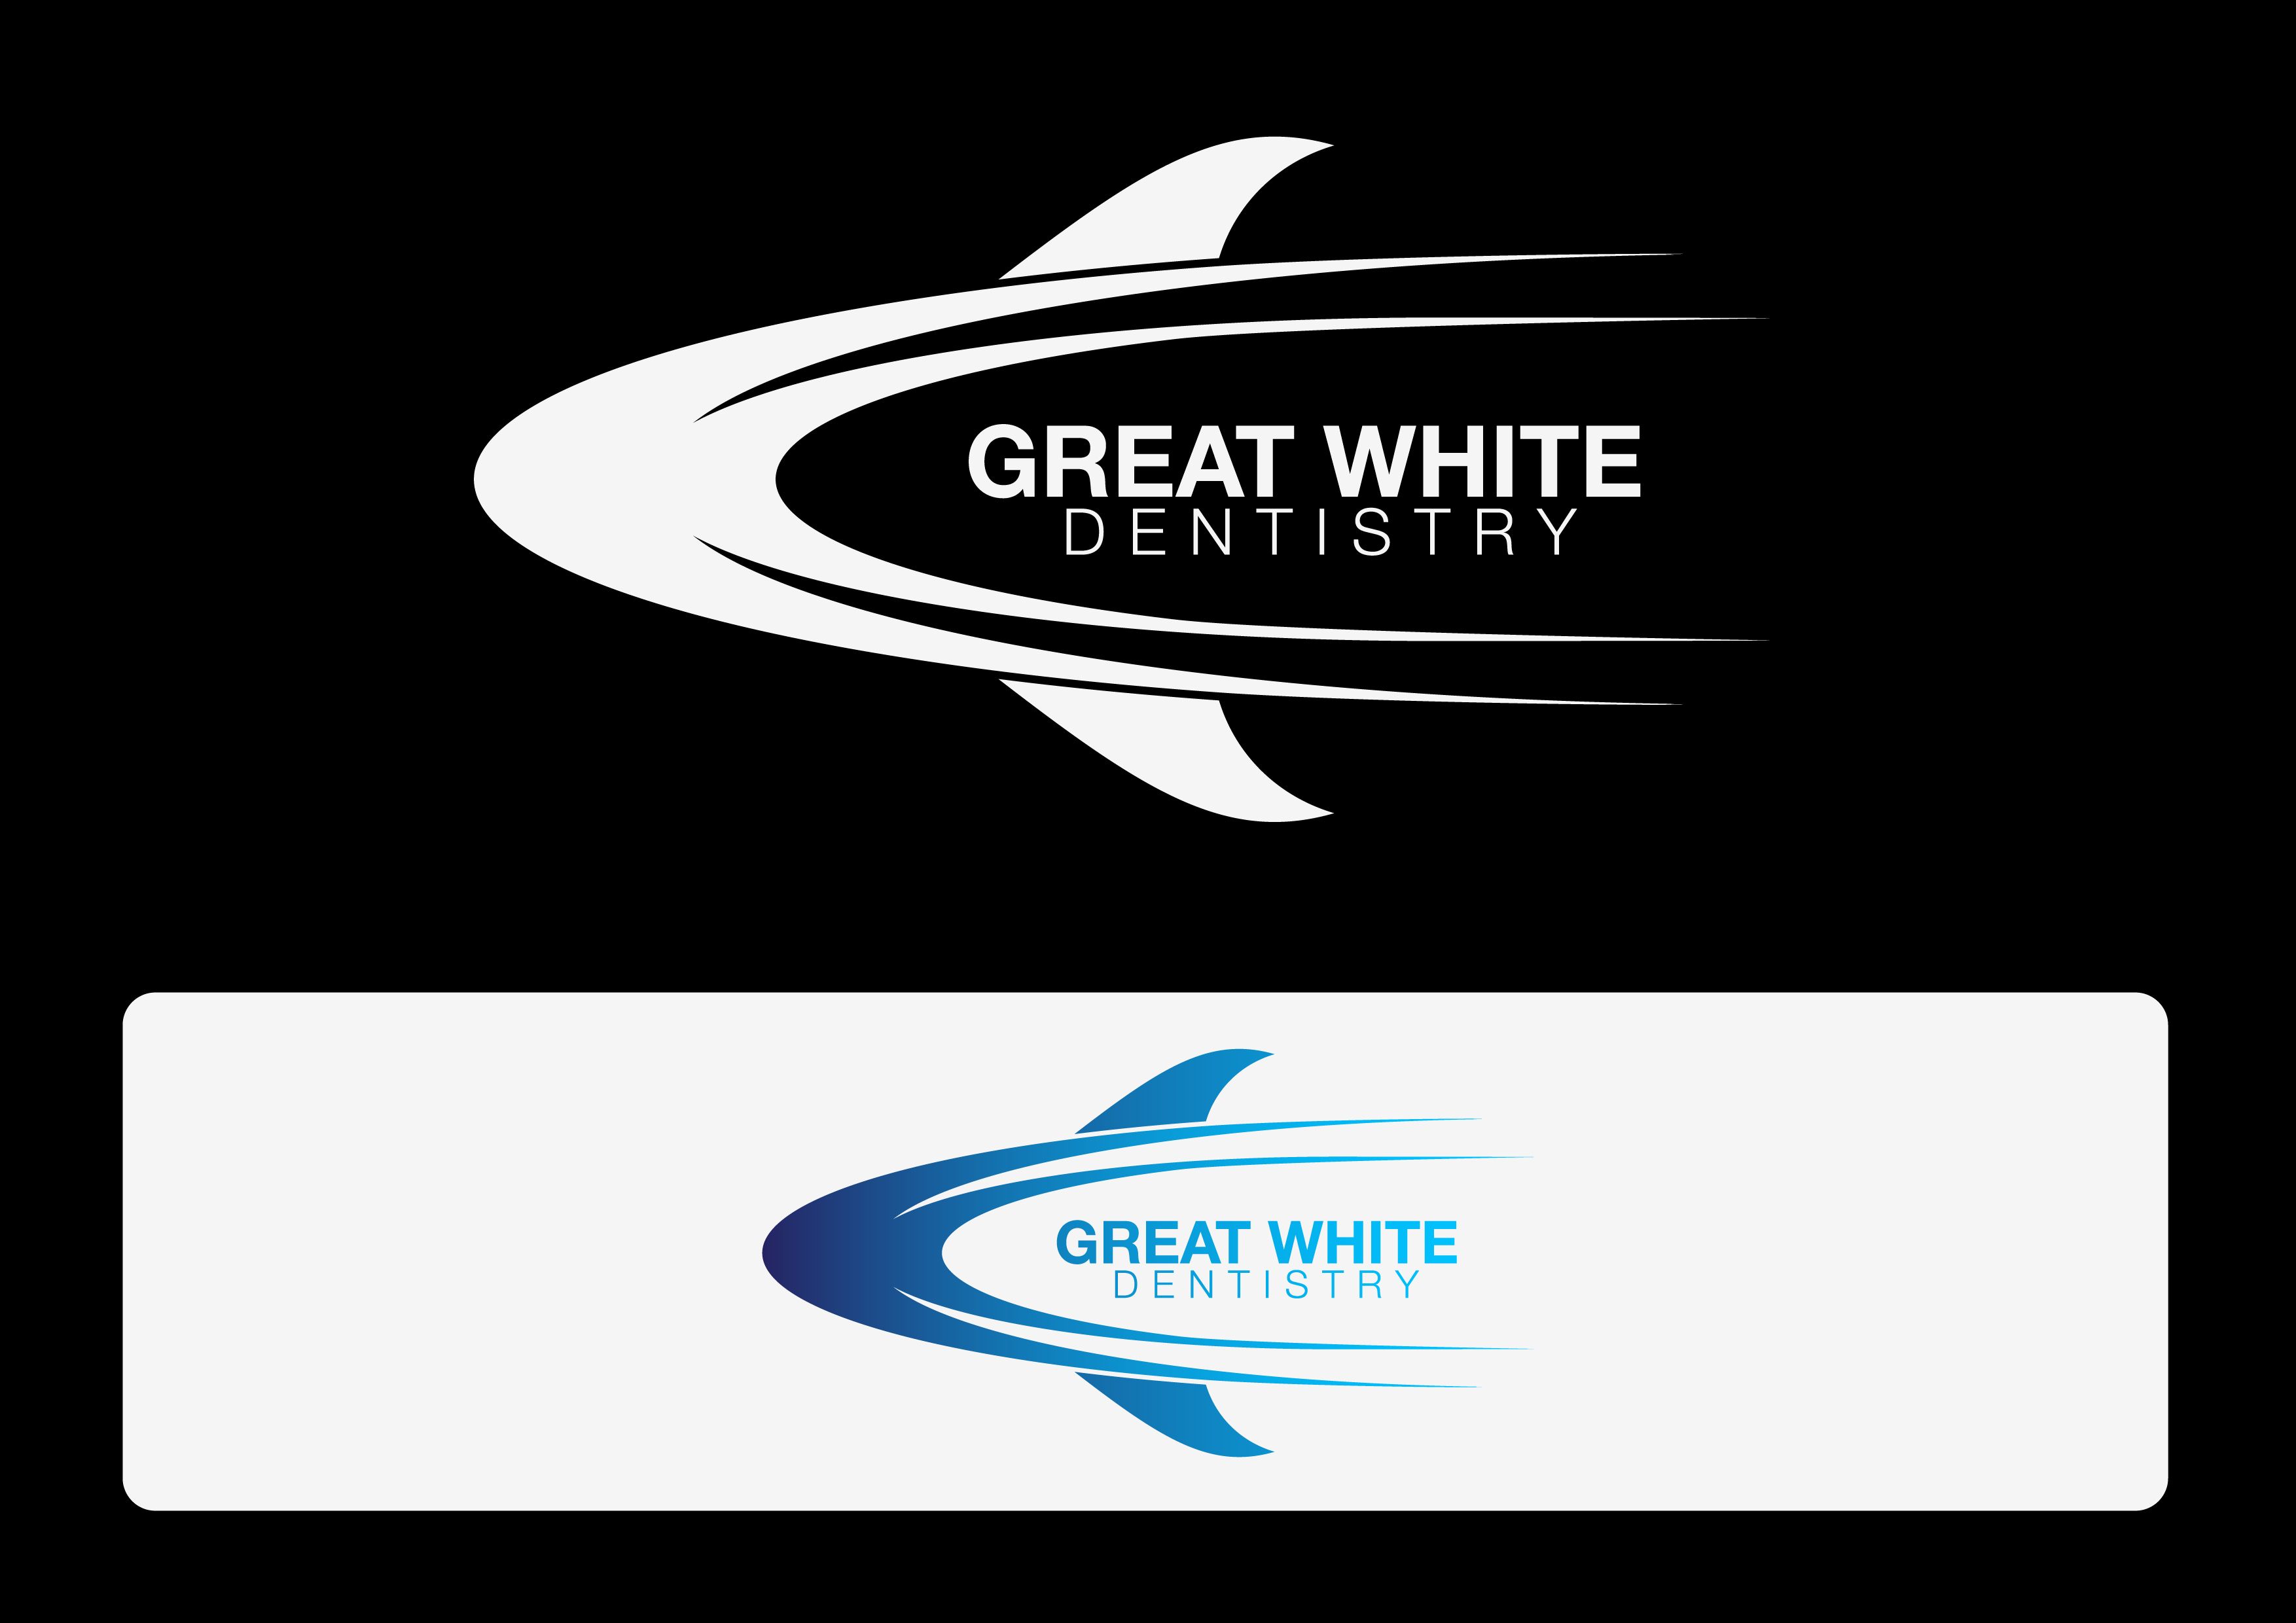 Logo Design by 3draw - Entry No. 56 in the Logo Design Contest Logo Design for Great White Dentistry.